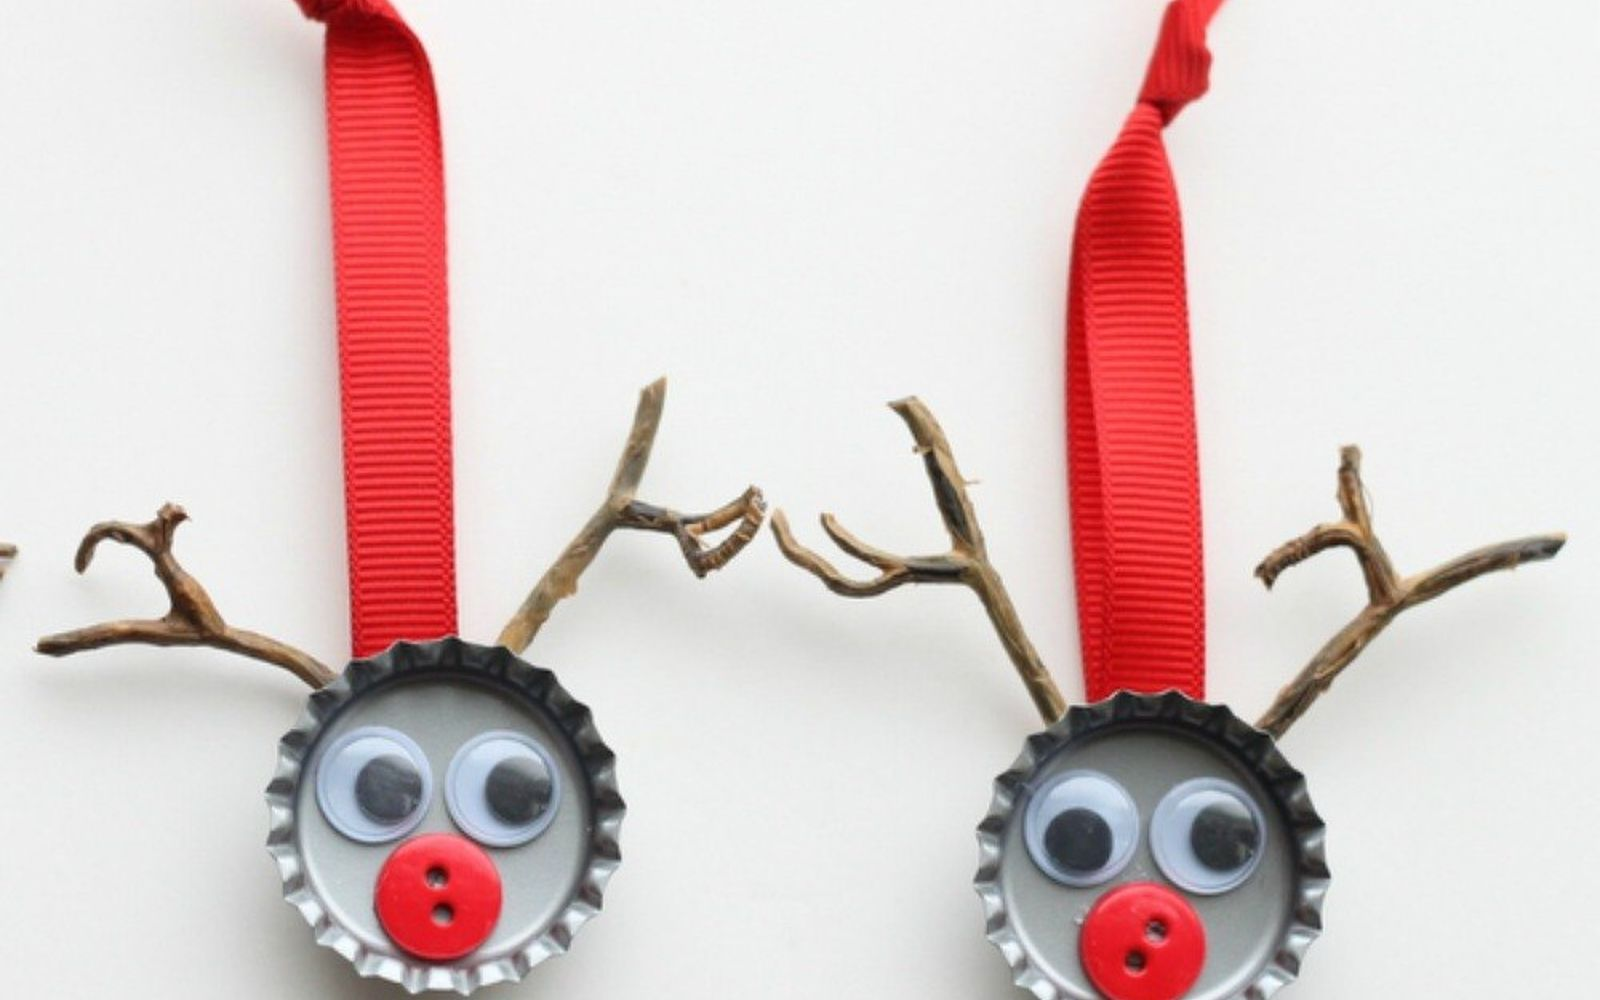 s save your bottle caps for these x crazy cool ideas, An adorable Christmas reindeer